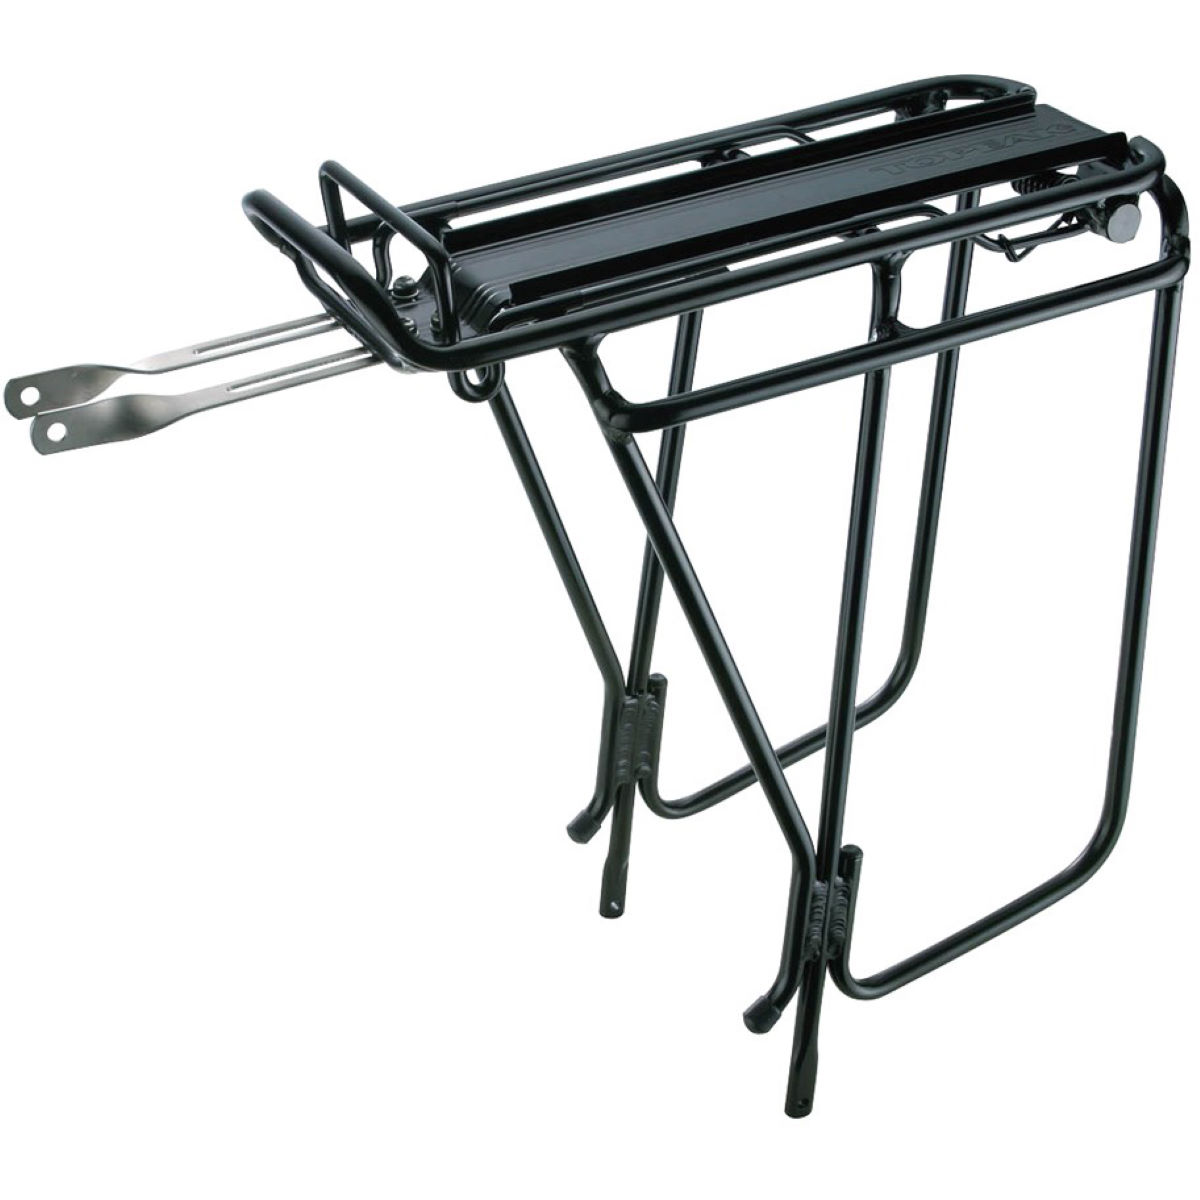 Topeak Topeak Super Tourist DX Sprung Rear Rack   Pannier Racks